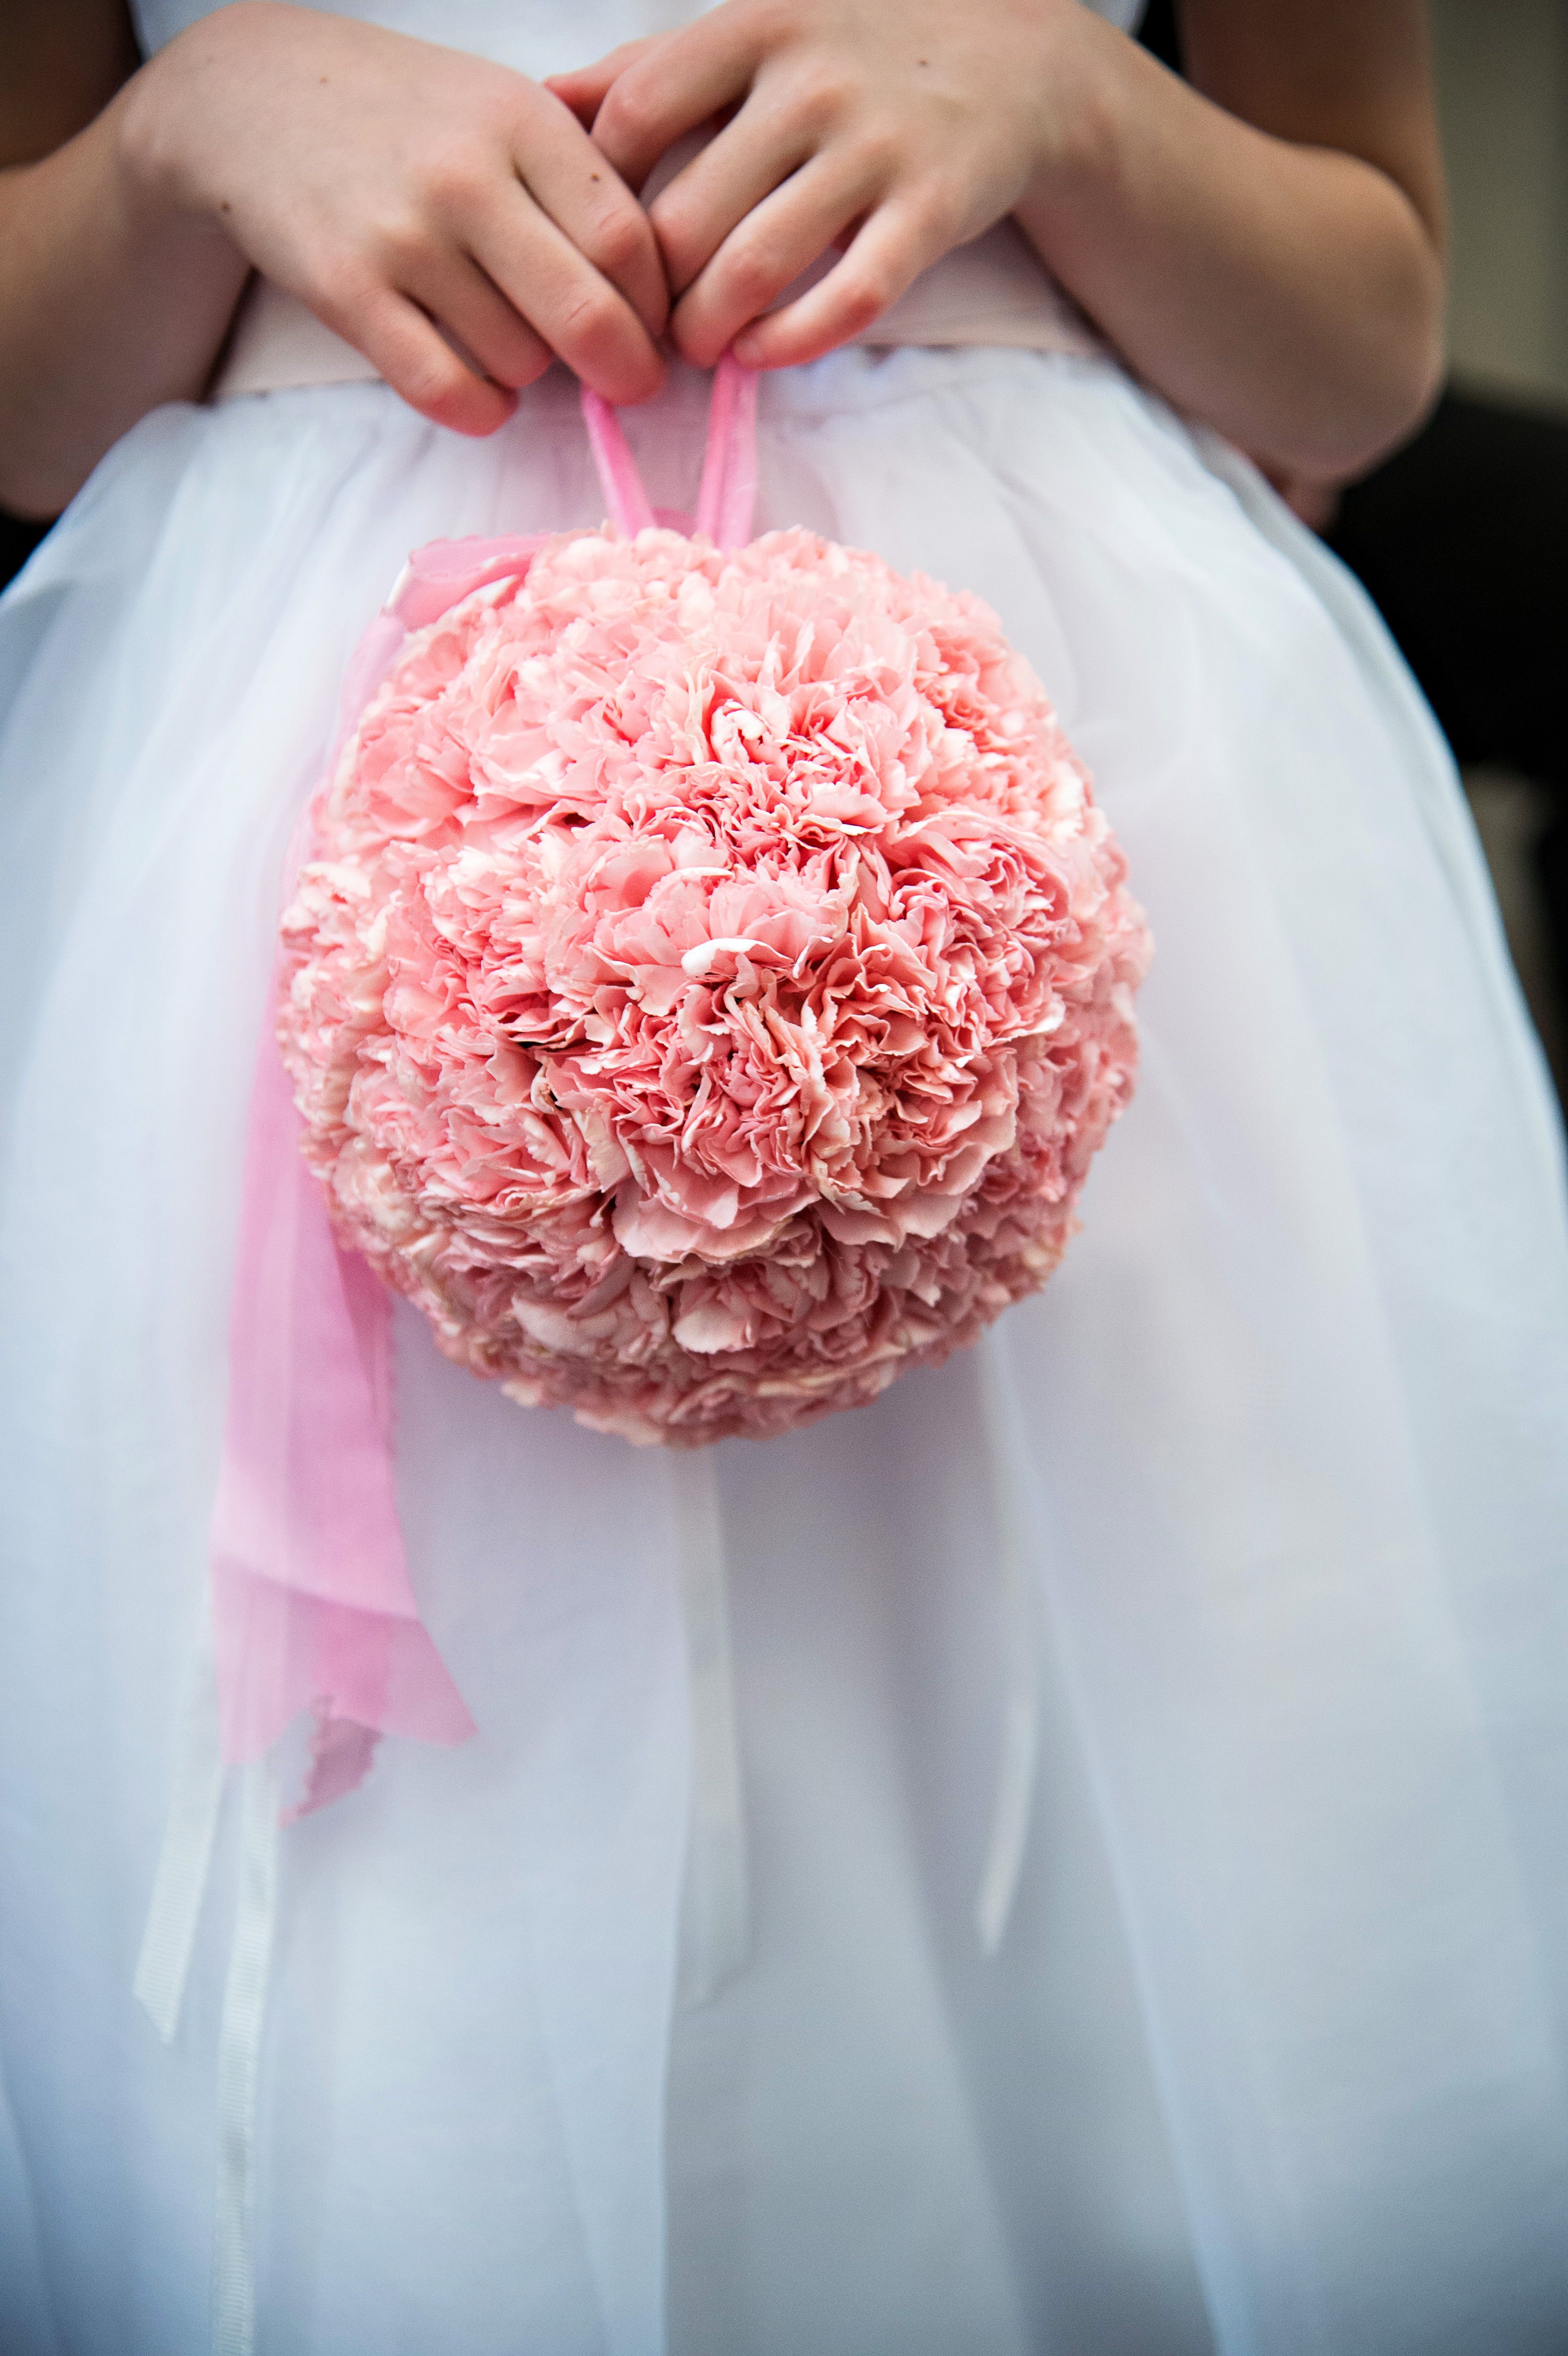 Pristine Pink Carnations Make A Beautiful Pomander For A Flower Girl